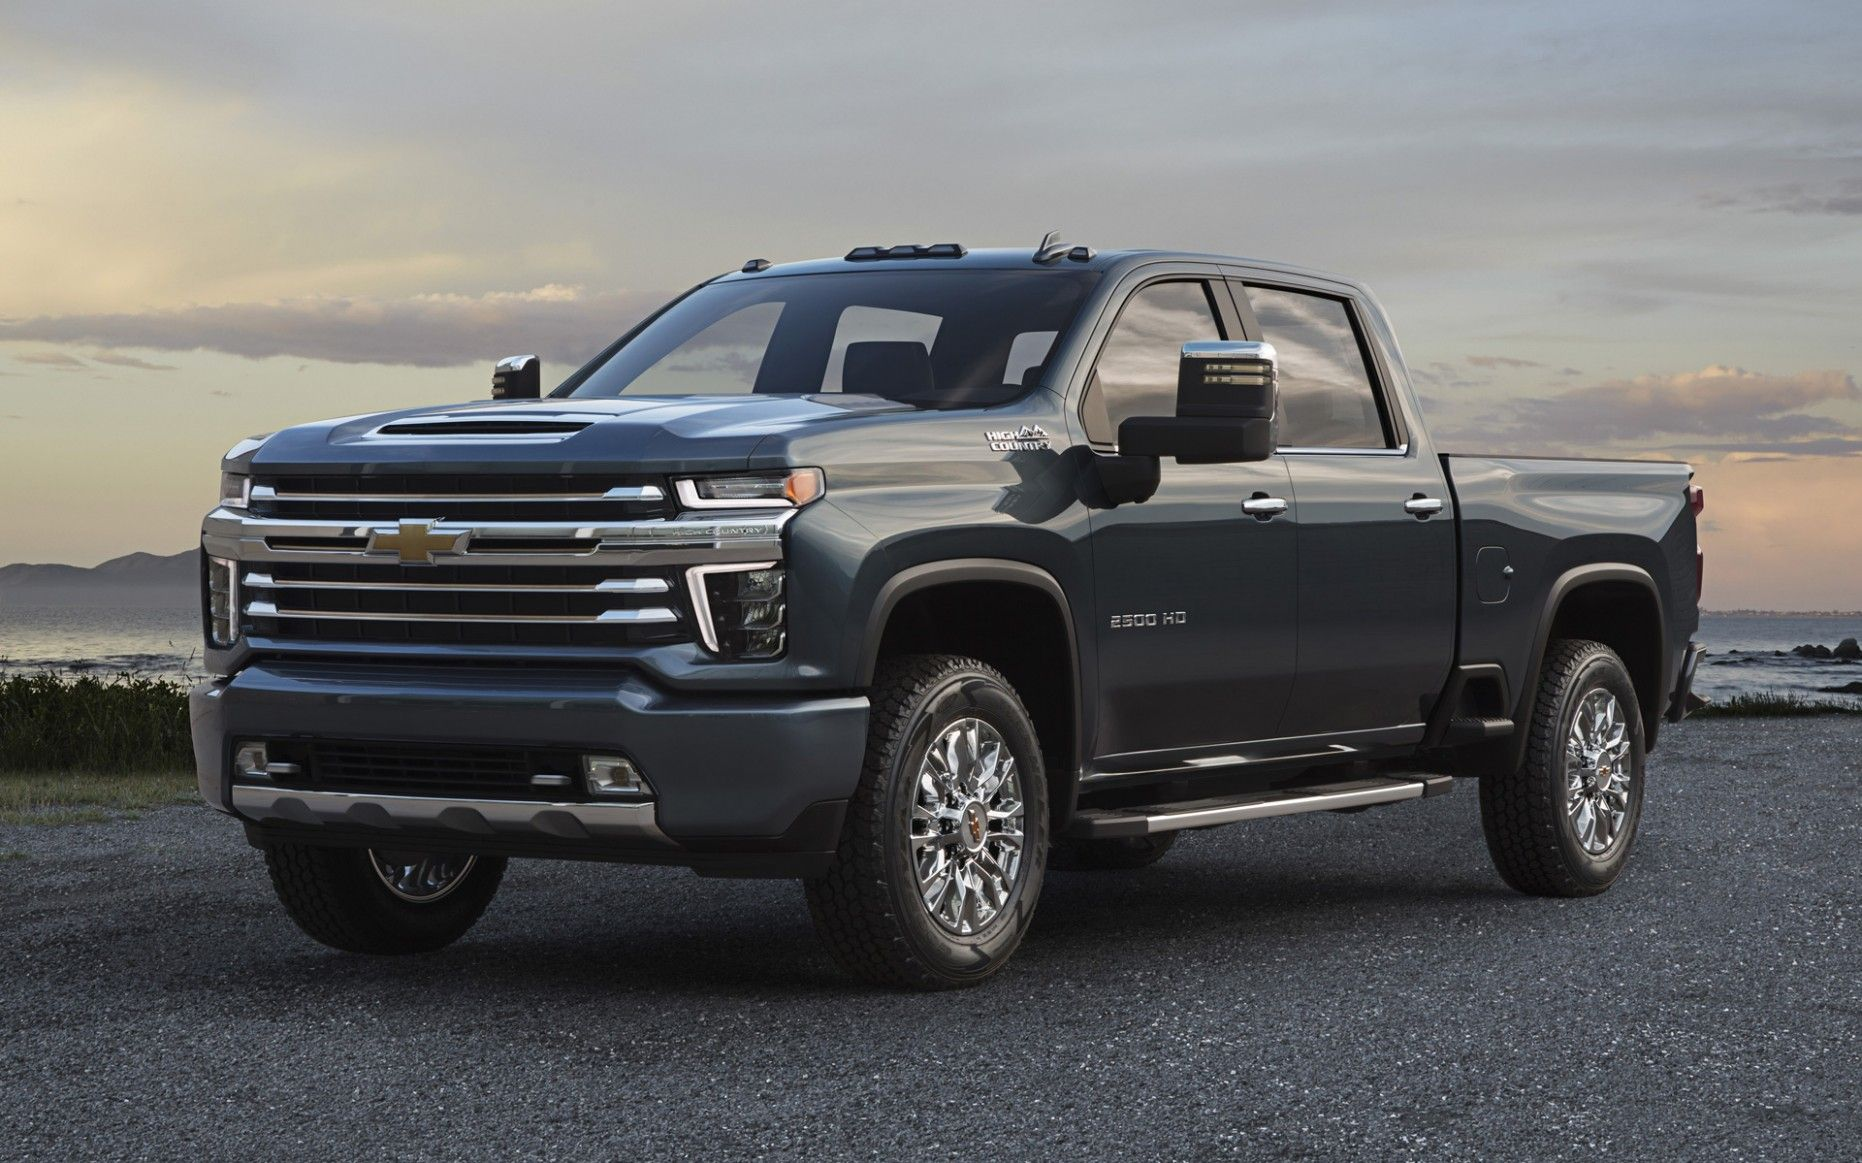 2020 Chevrolet High Country Price Review Chevy Duramax Silverado Hd Chevy Silverado